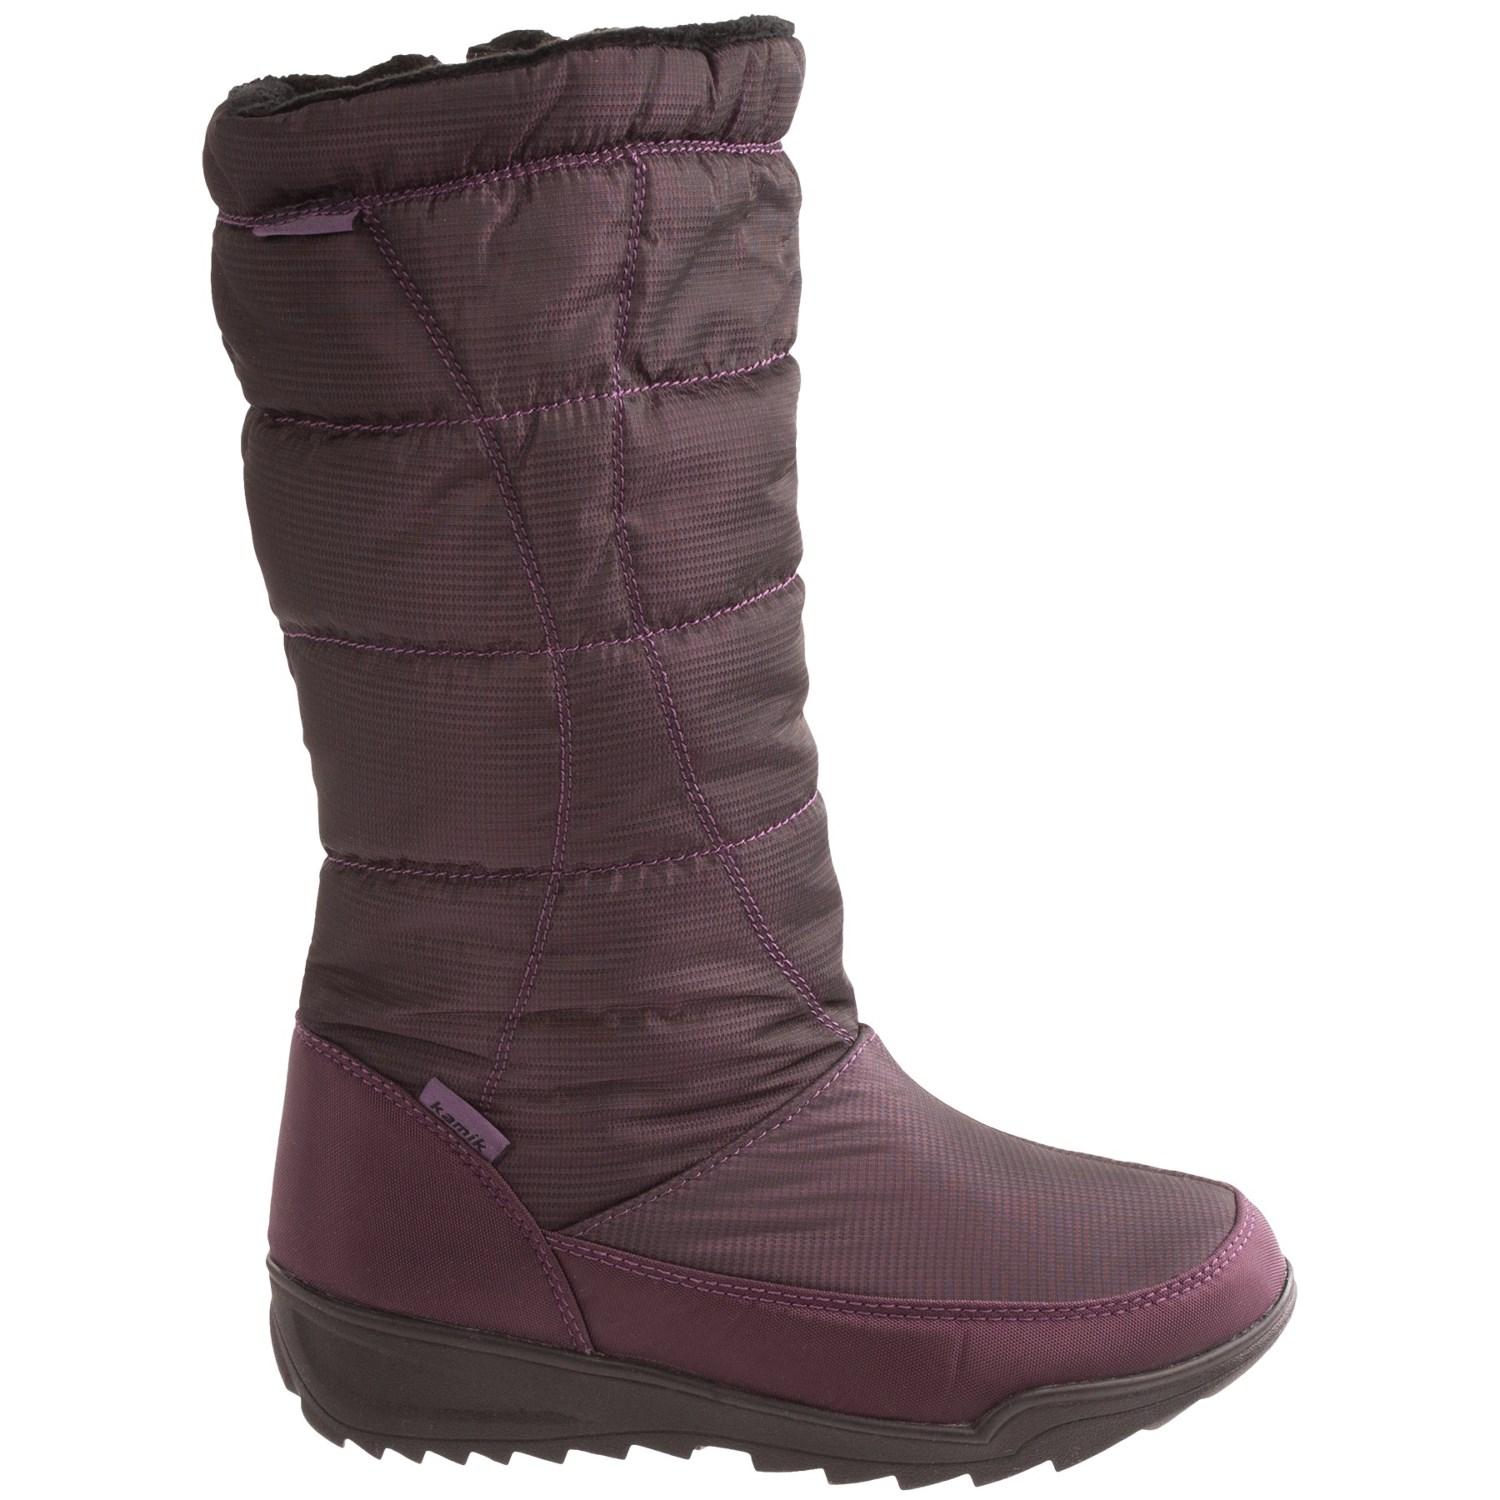 Kamik Nice Snow Boots (For Women) - Save 82%